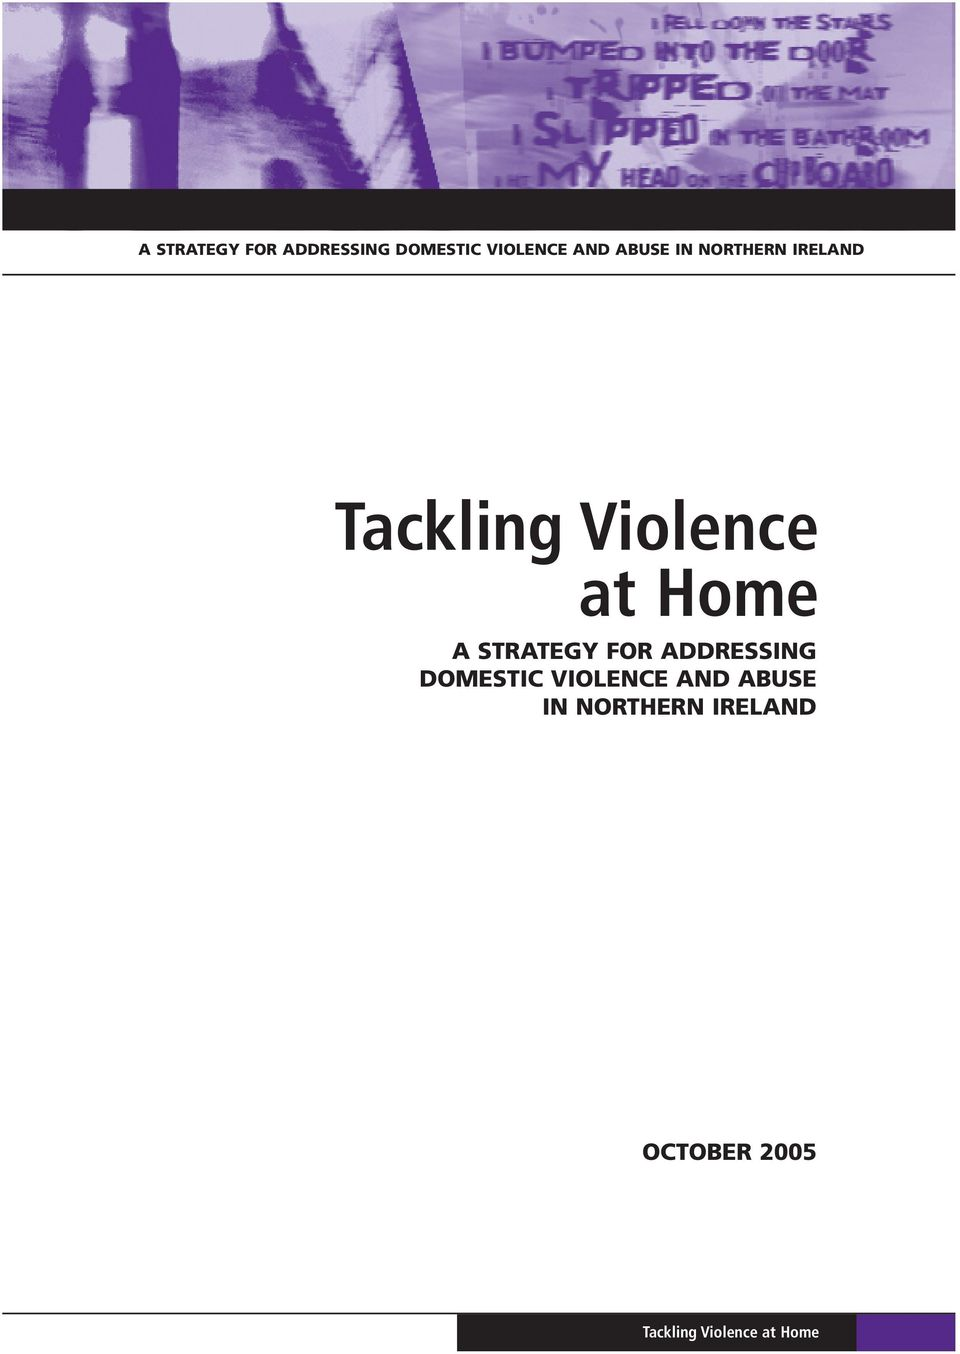 VIOLENCE AND ABUSE IN NORTHERN